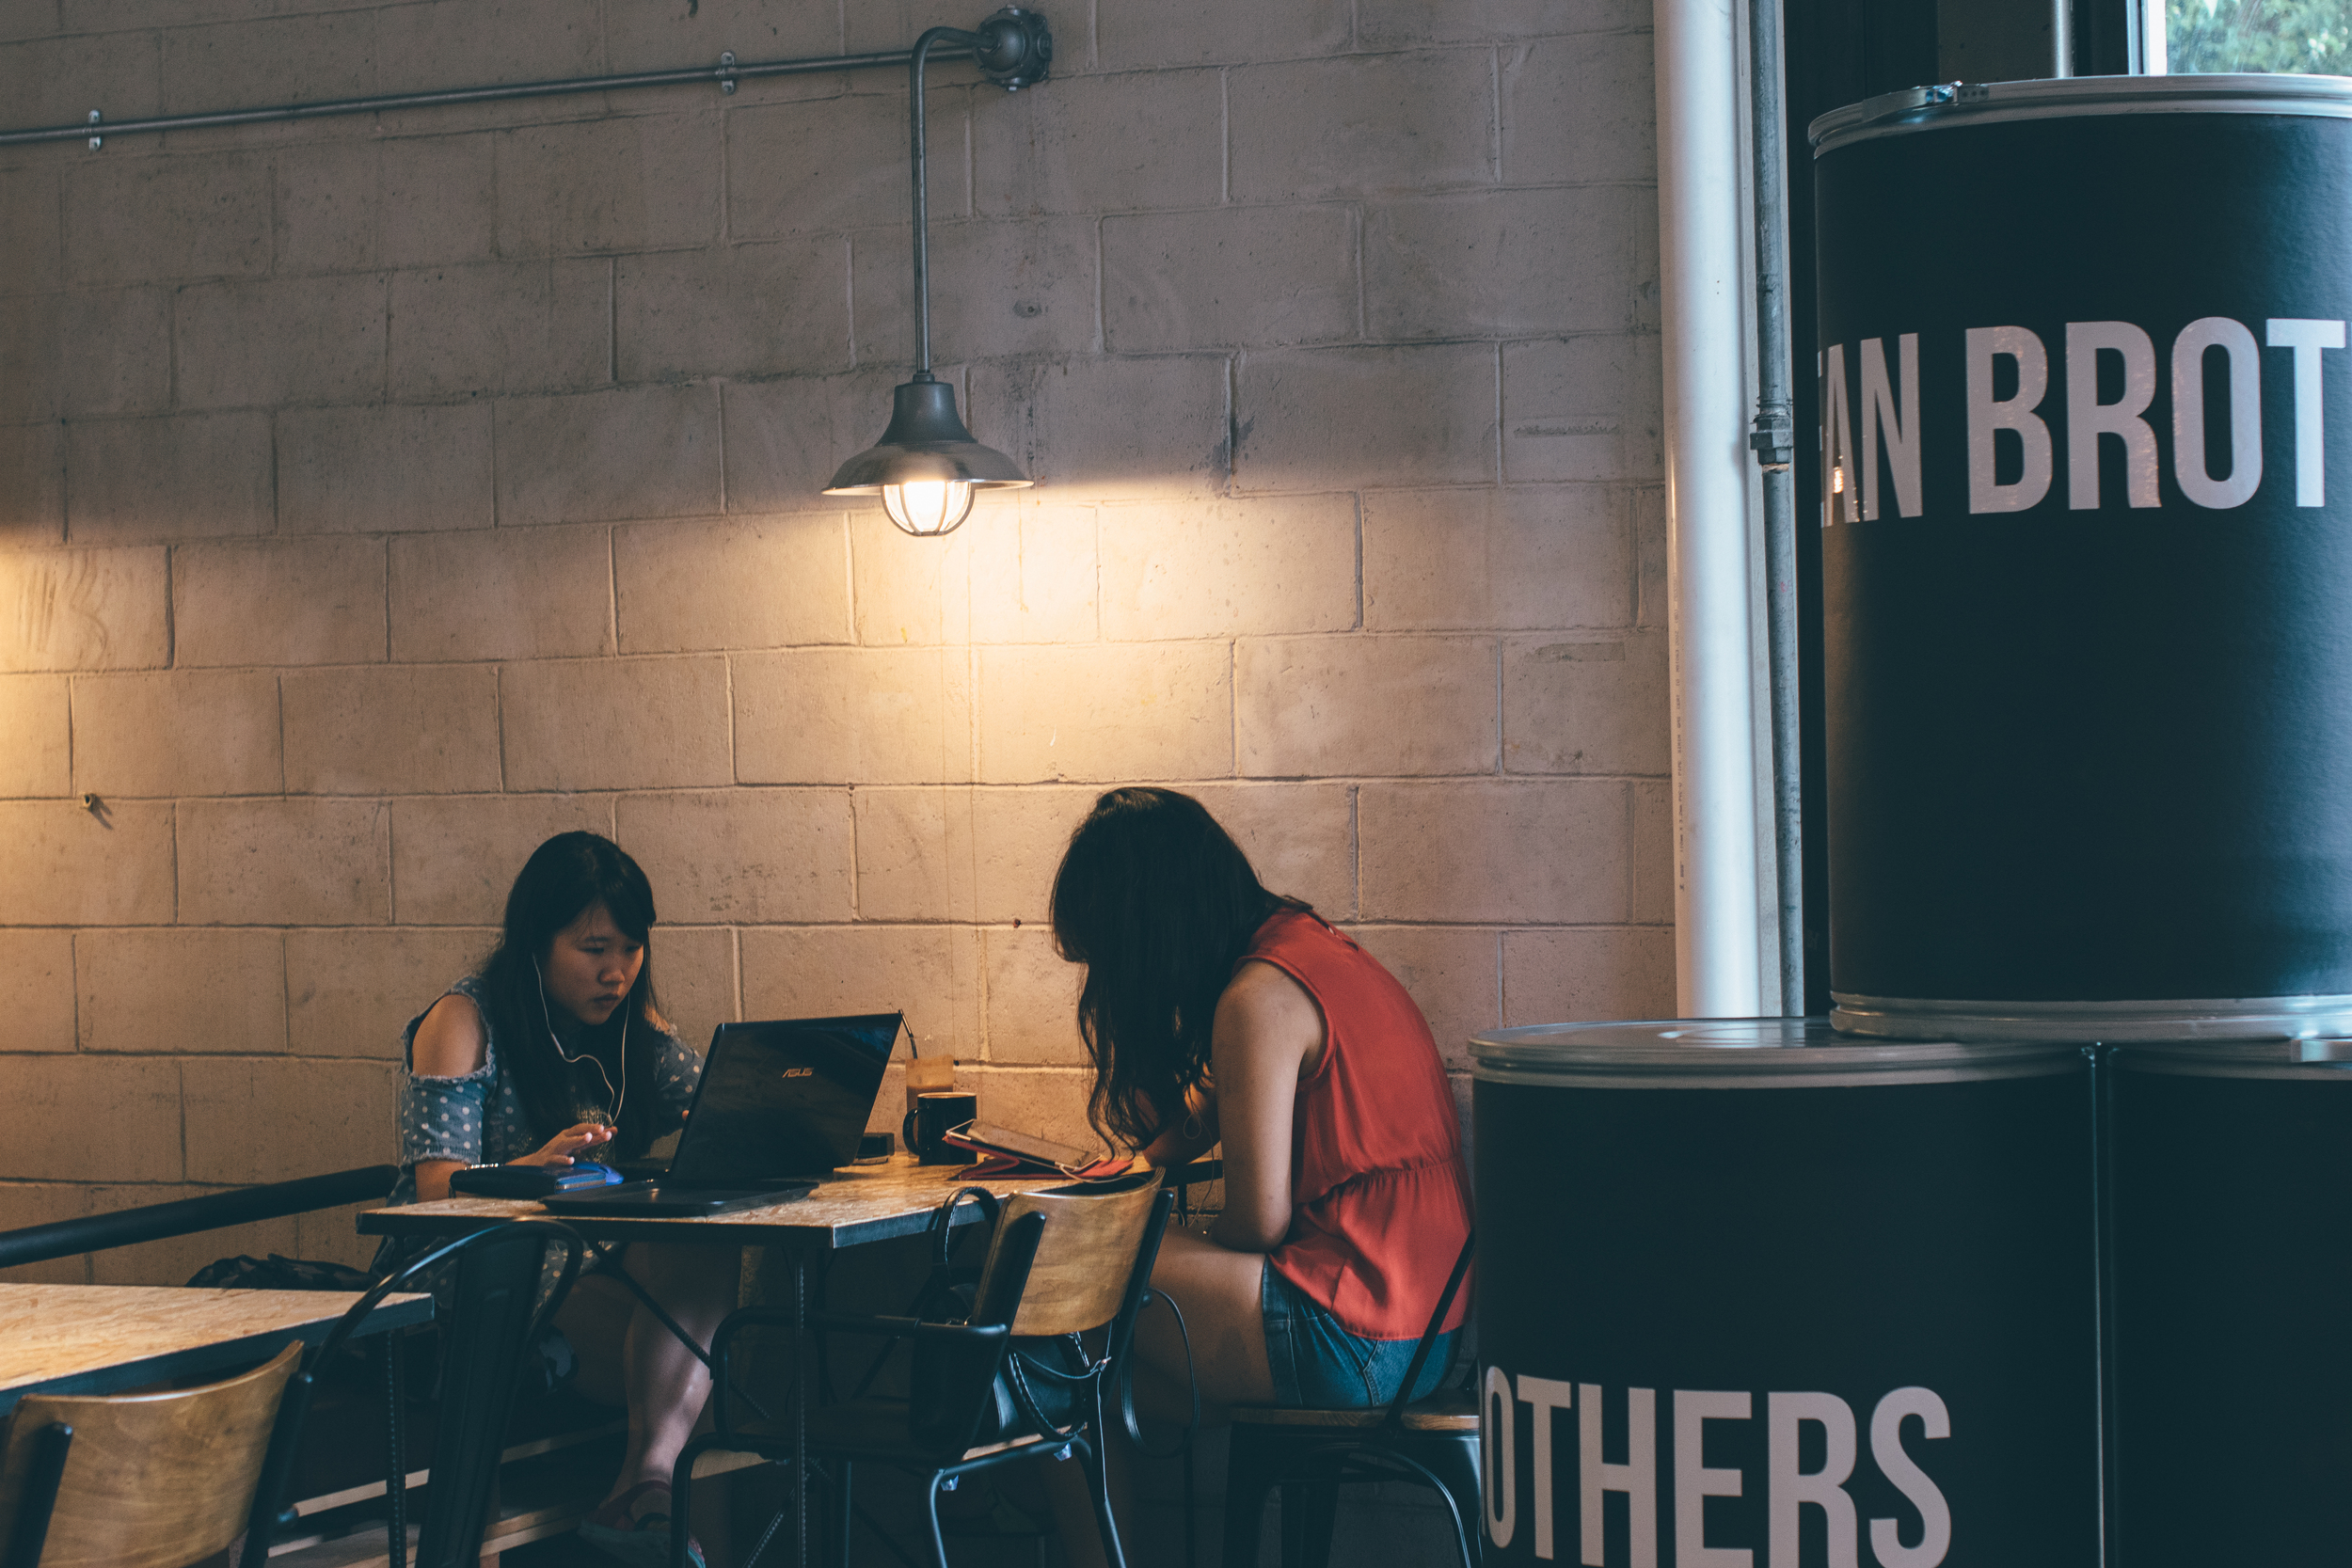 Bean Brothers Malaysia | A Beautiful Distraction